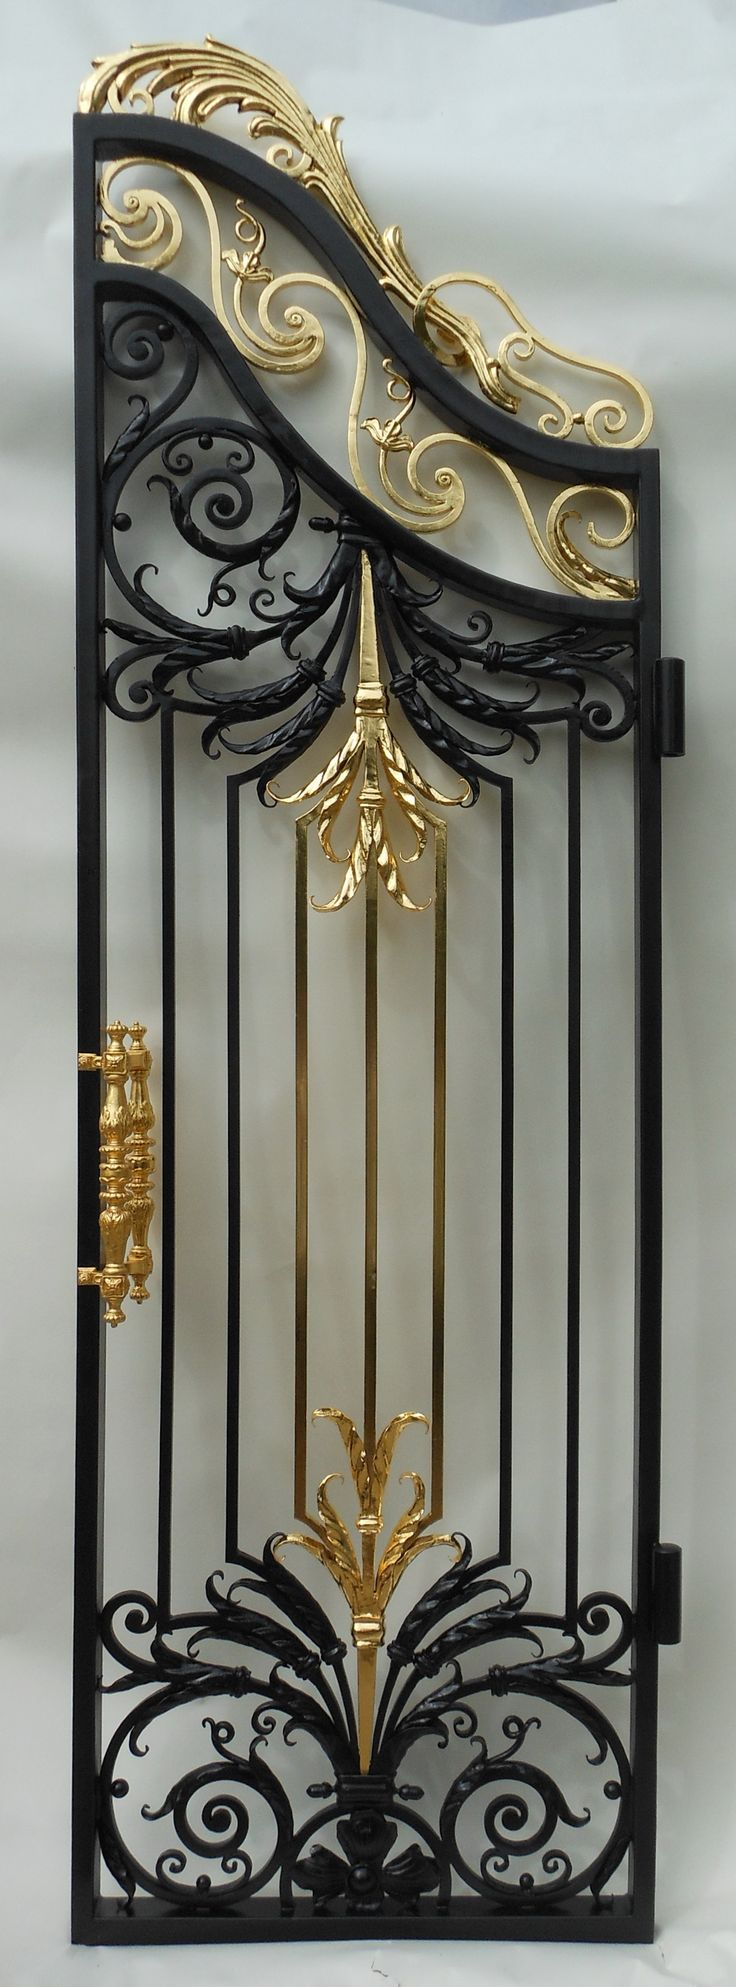 Just finished the complex of grand baroque gates with 2 side doors and 4 finials. One of the doors. 08.2017.